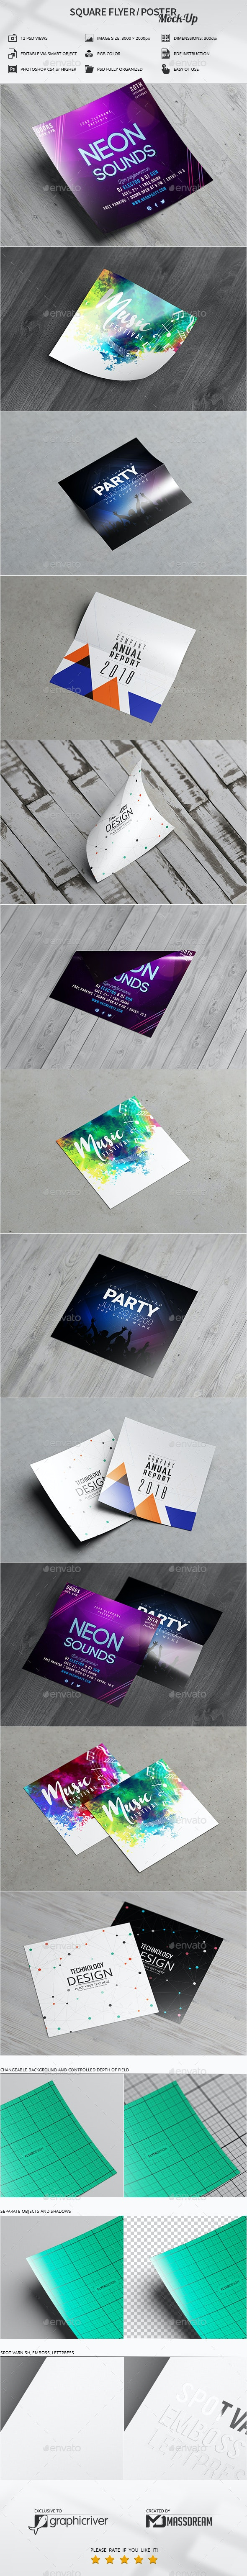 Square Flyer / Poster Mock-Up - Product Mock-Ups Graphics